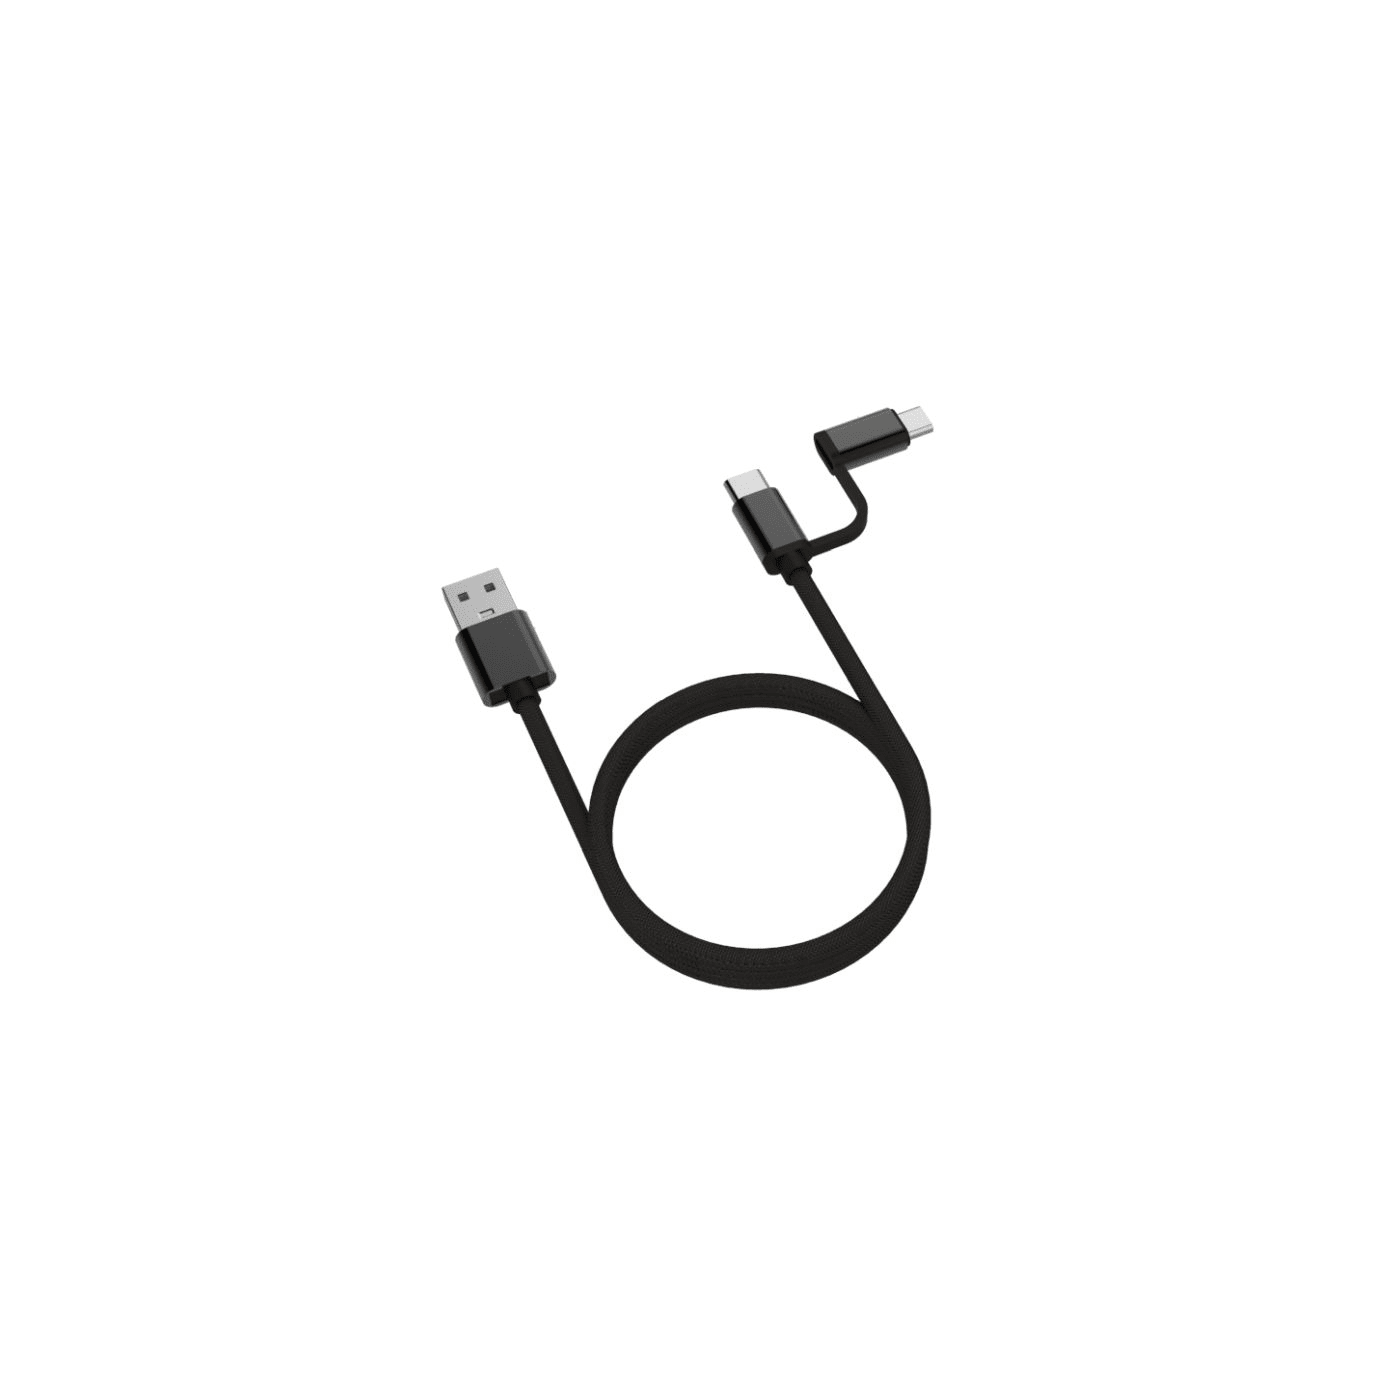 Pownergy Type-C 2 in 1 Cable